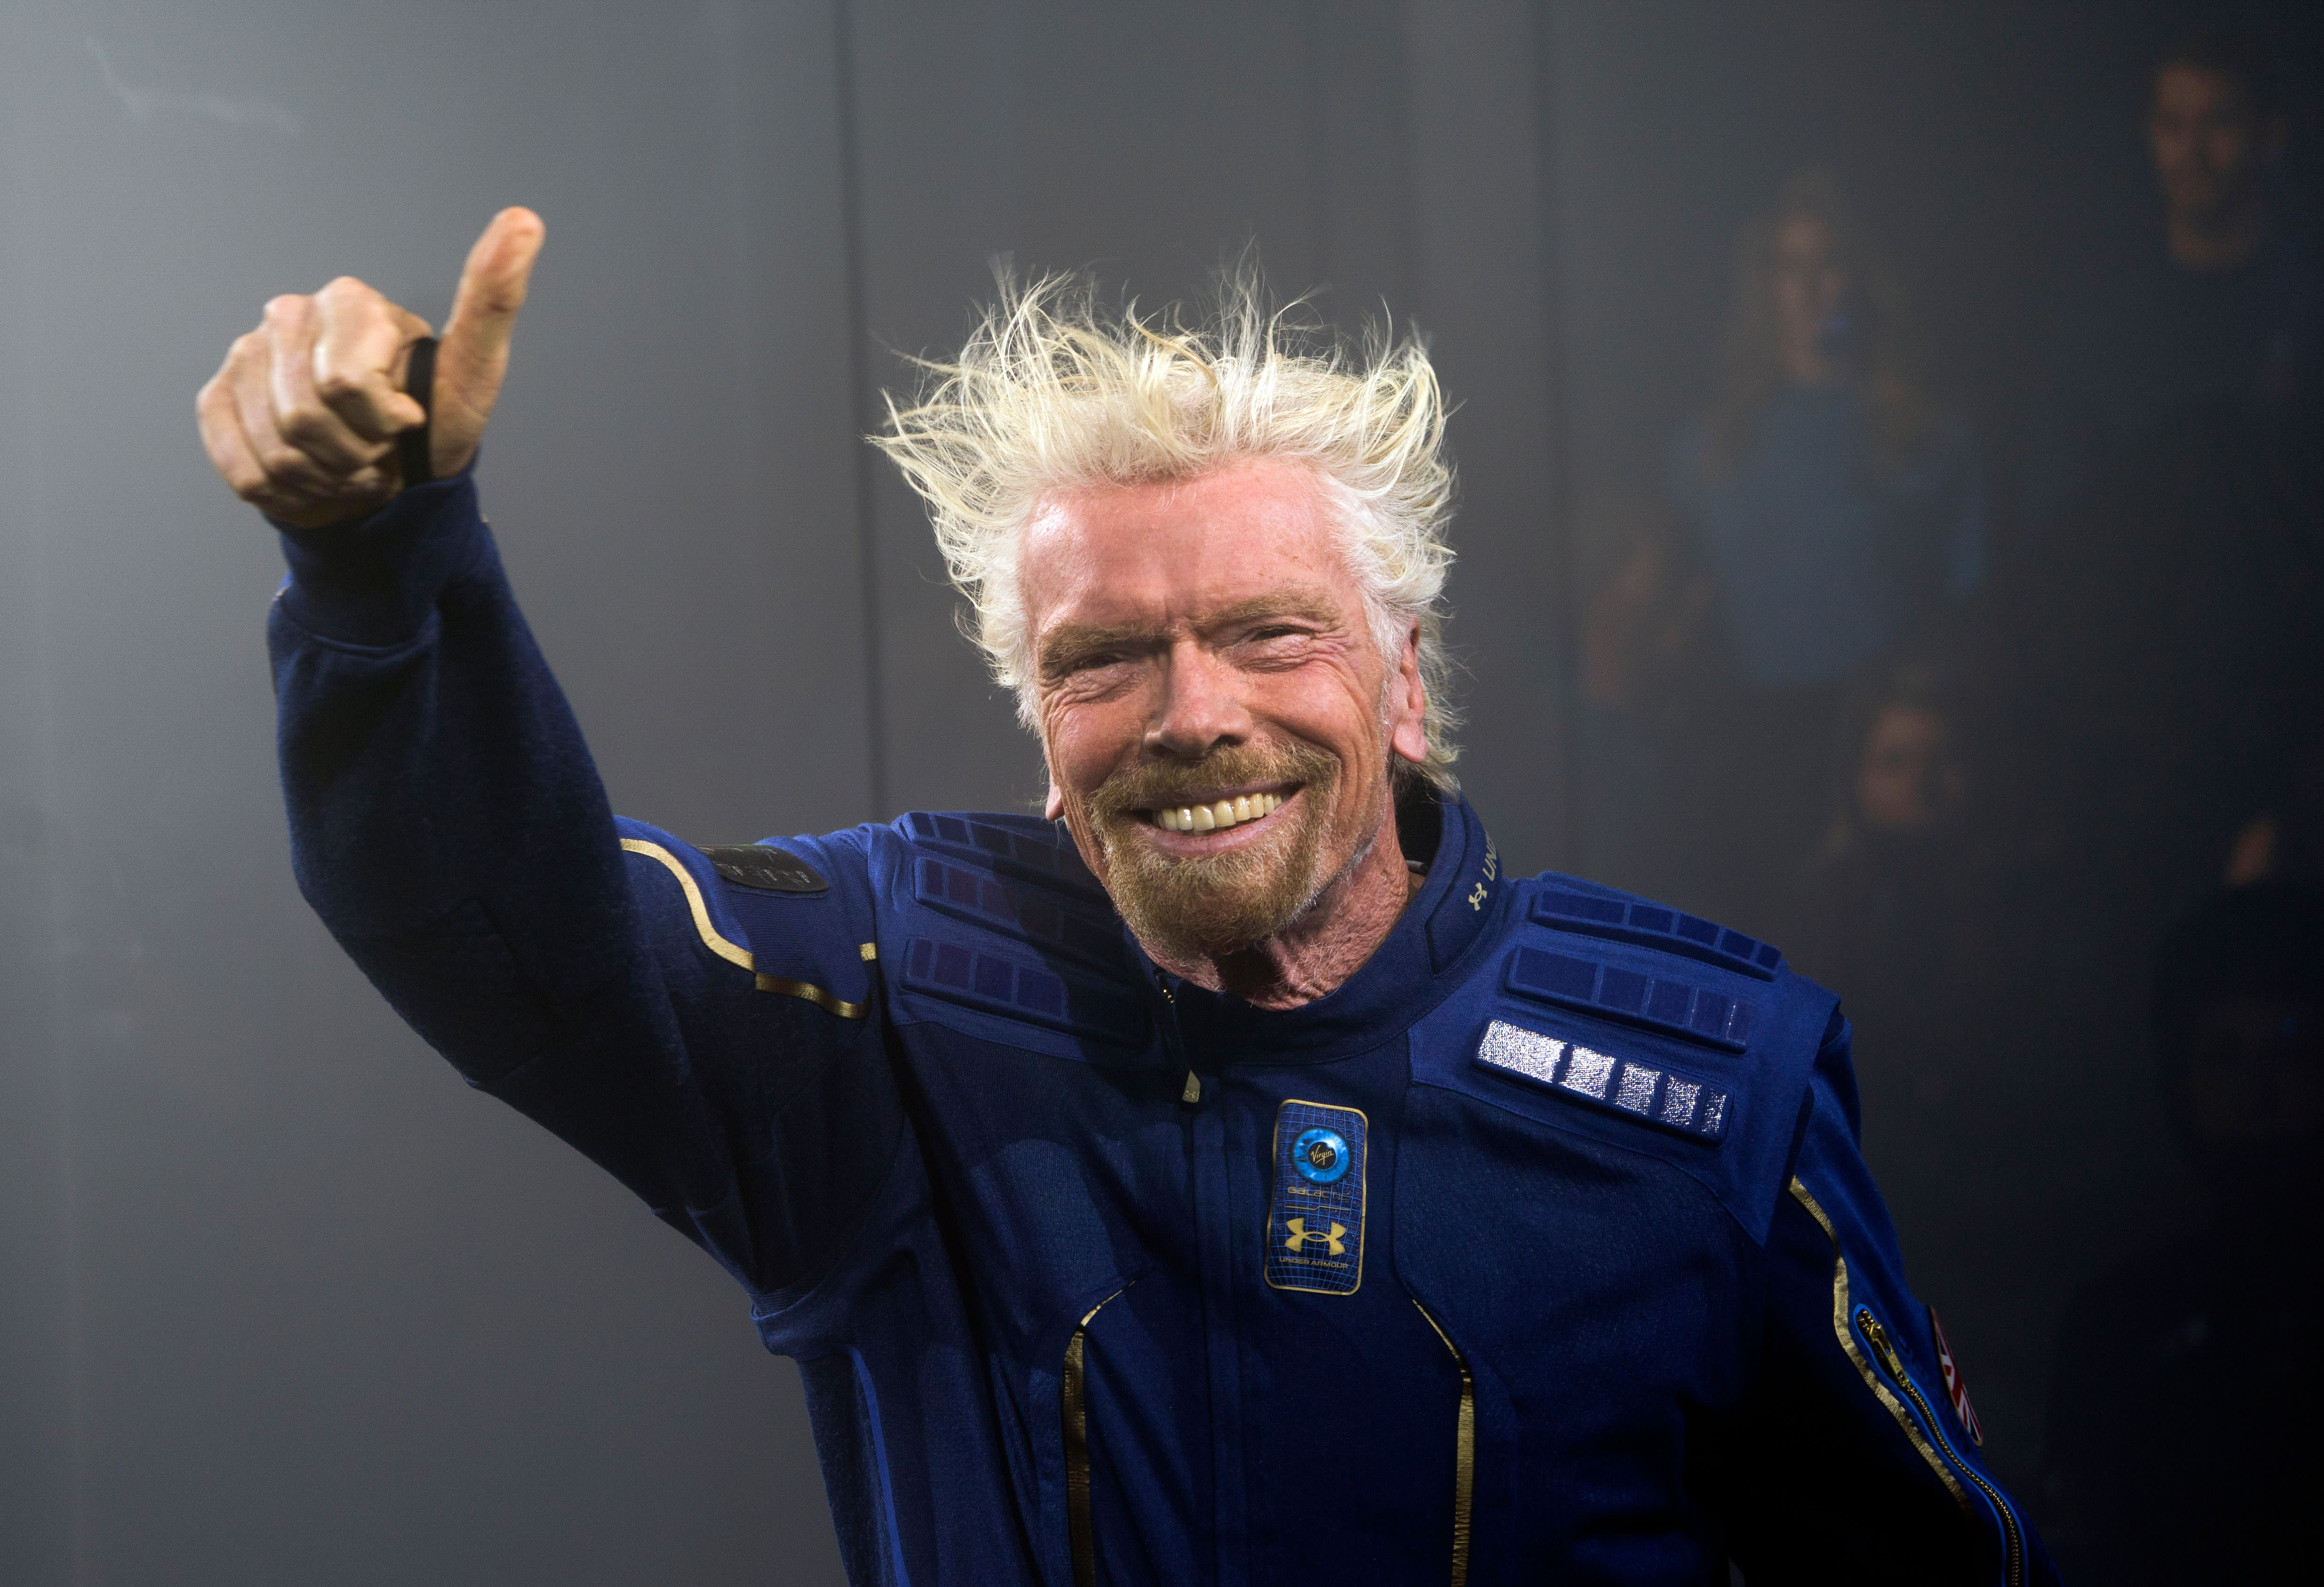 The Bezos, Musk and Branson billionaire space race is happening right now